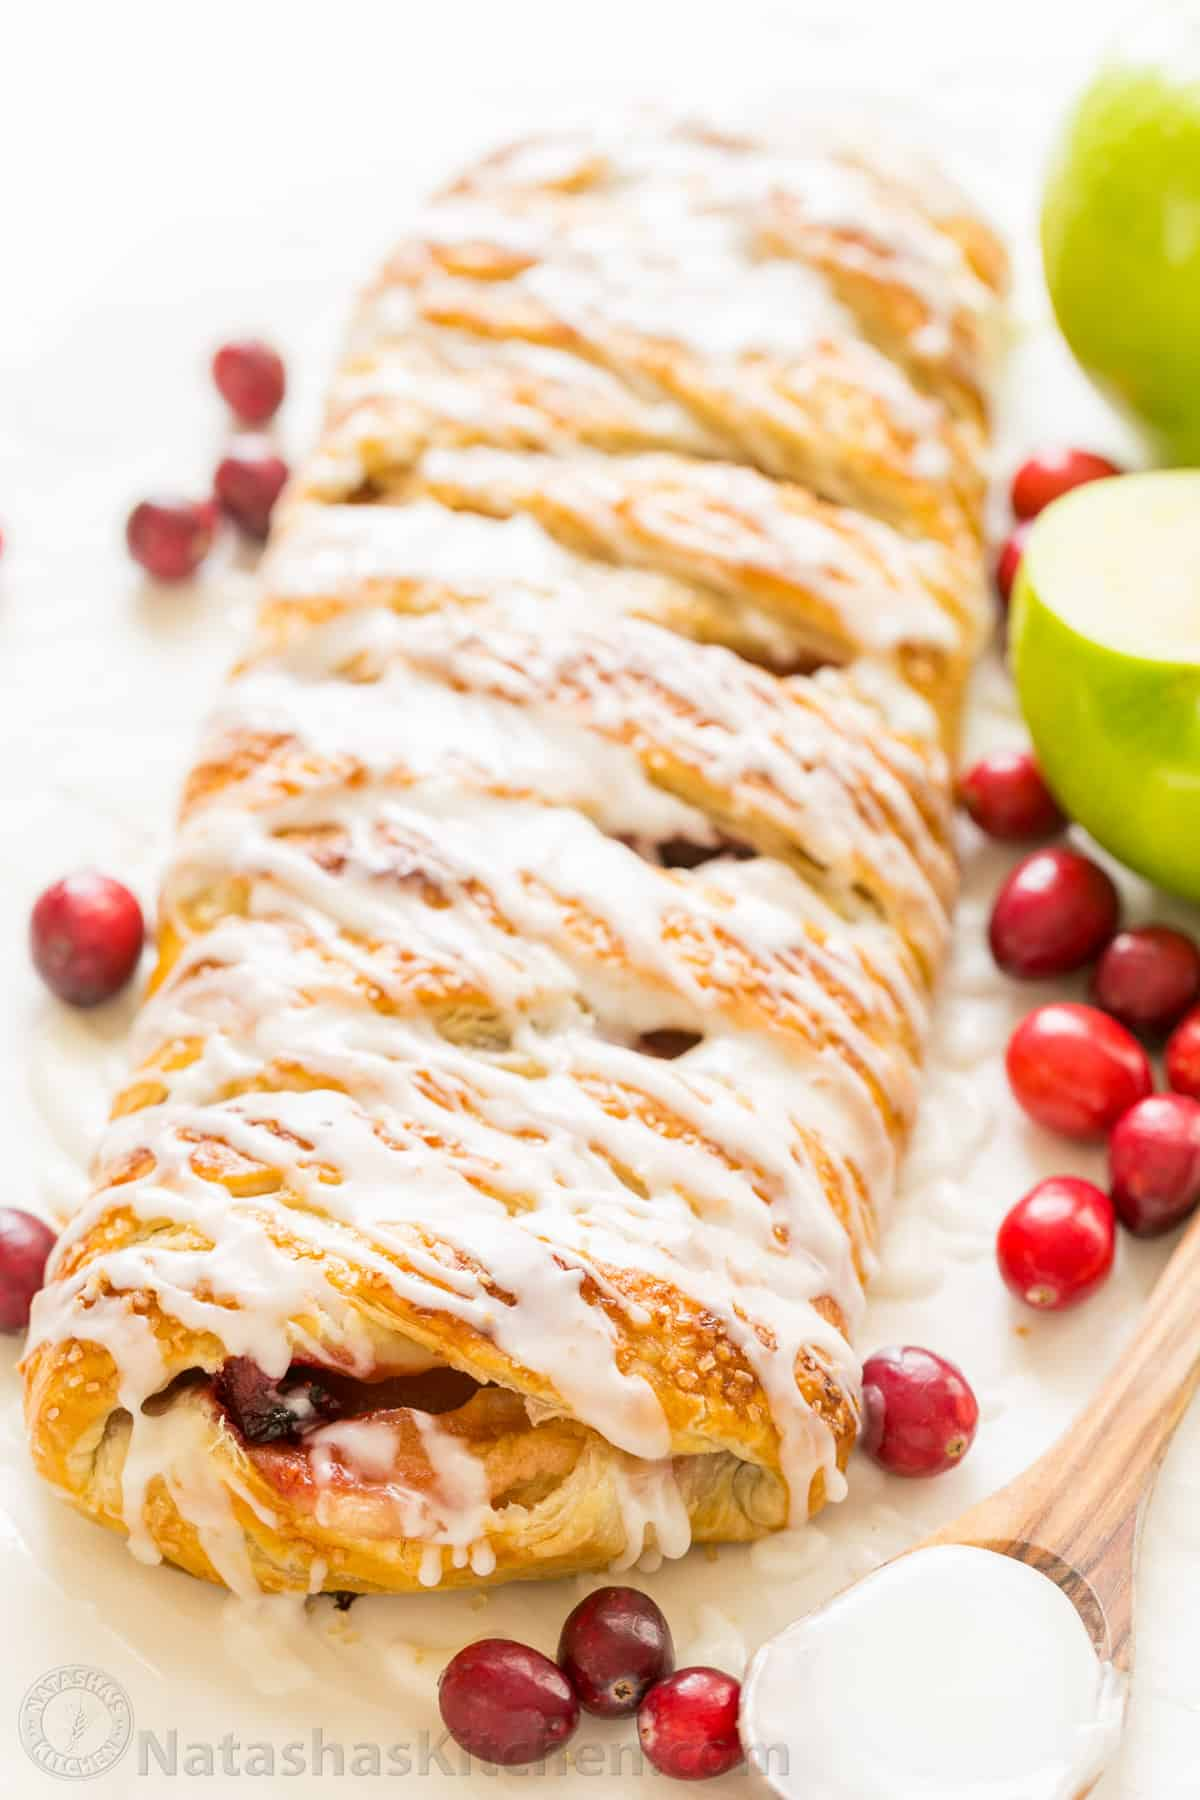 An Apple Danish Braid loaded with juicy caramelized apples and cranberries in a flaky pastry shell